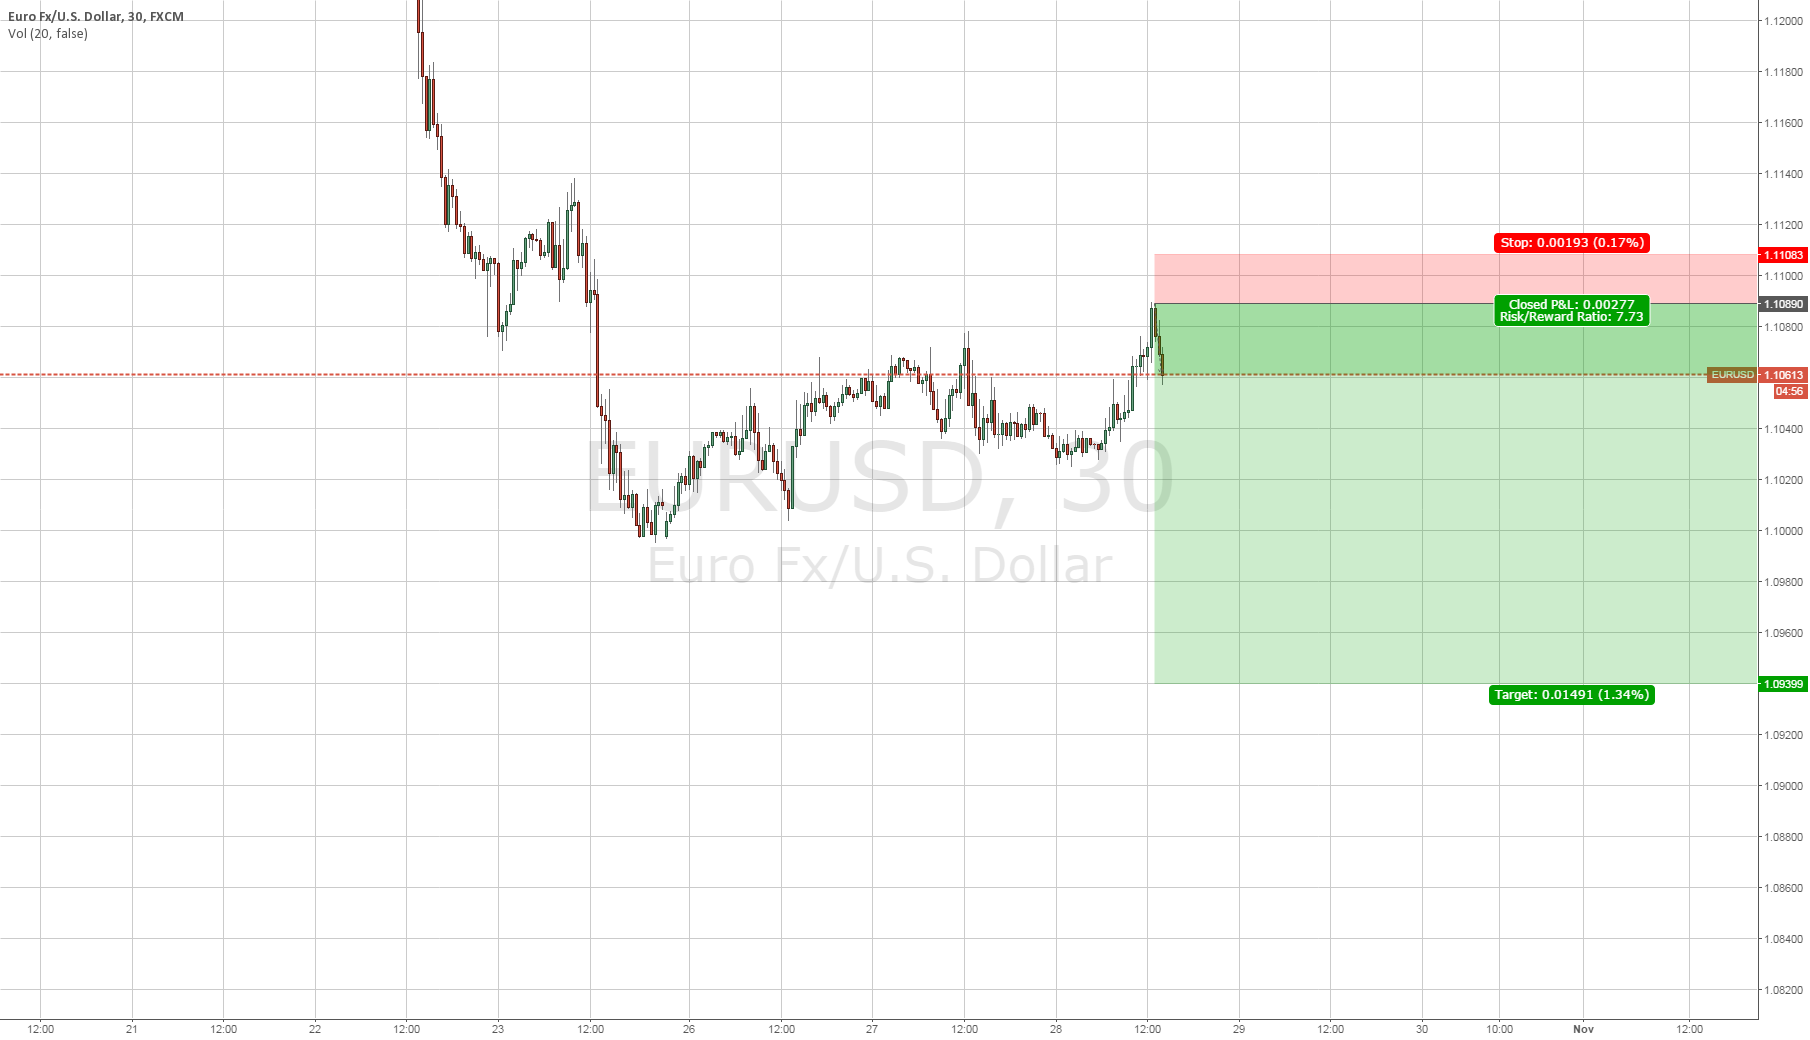 Shorted EURUSD